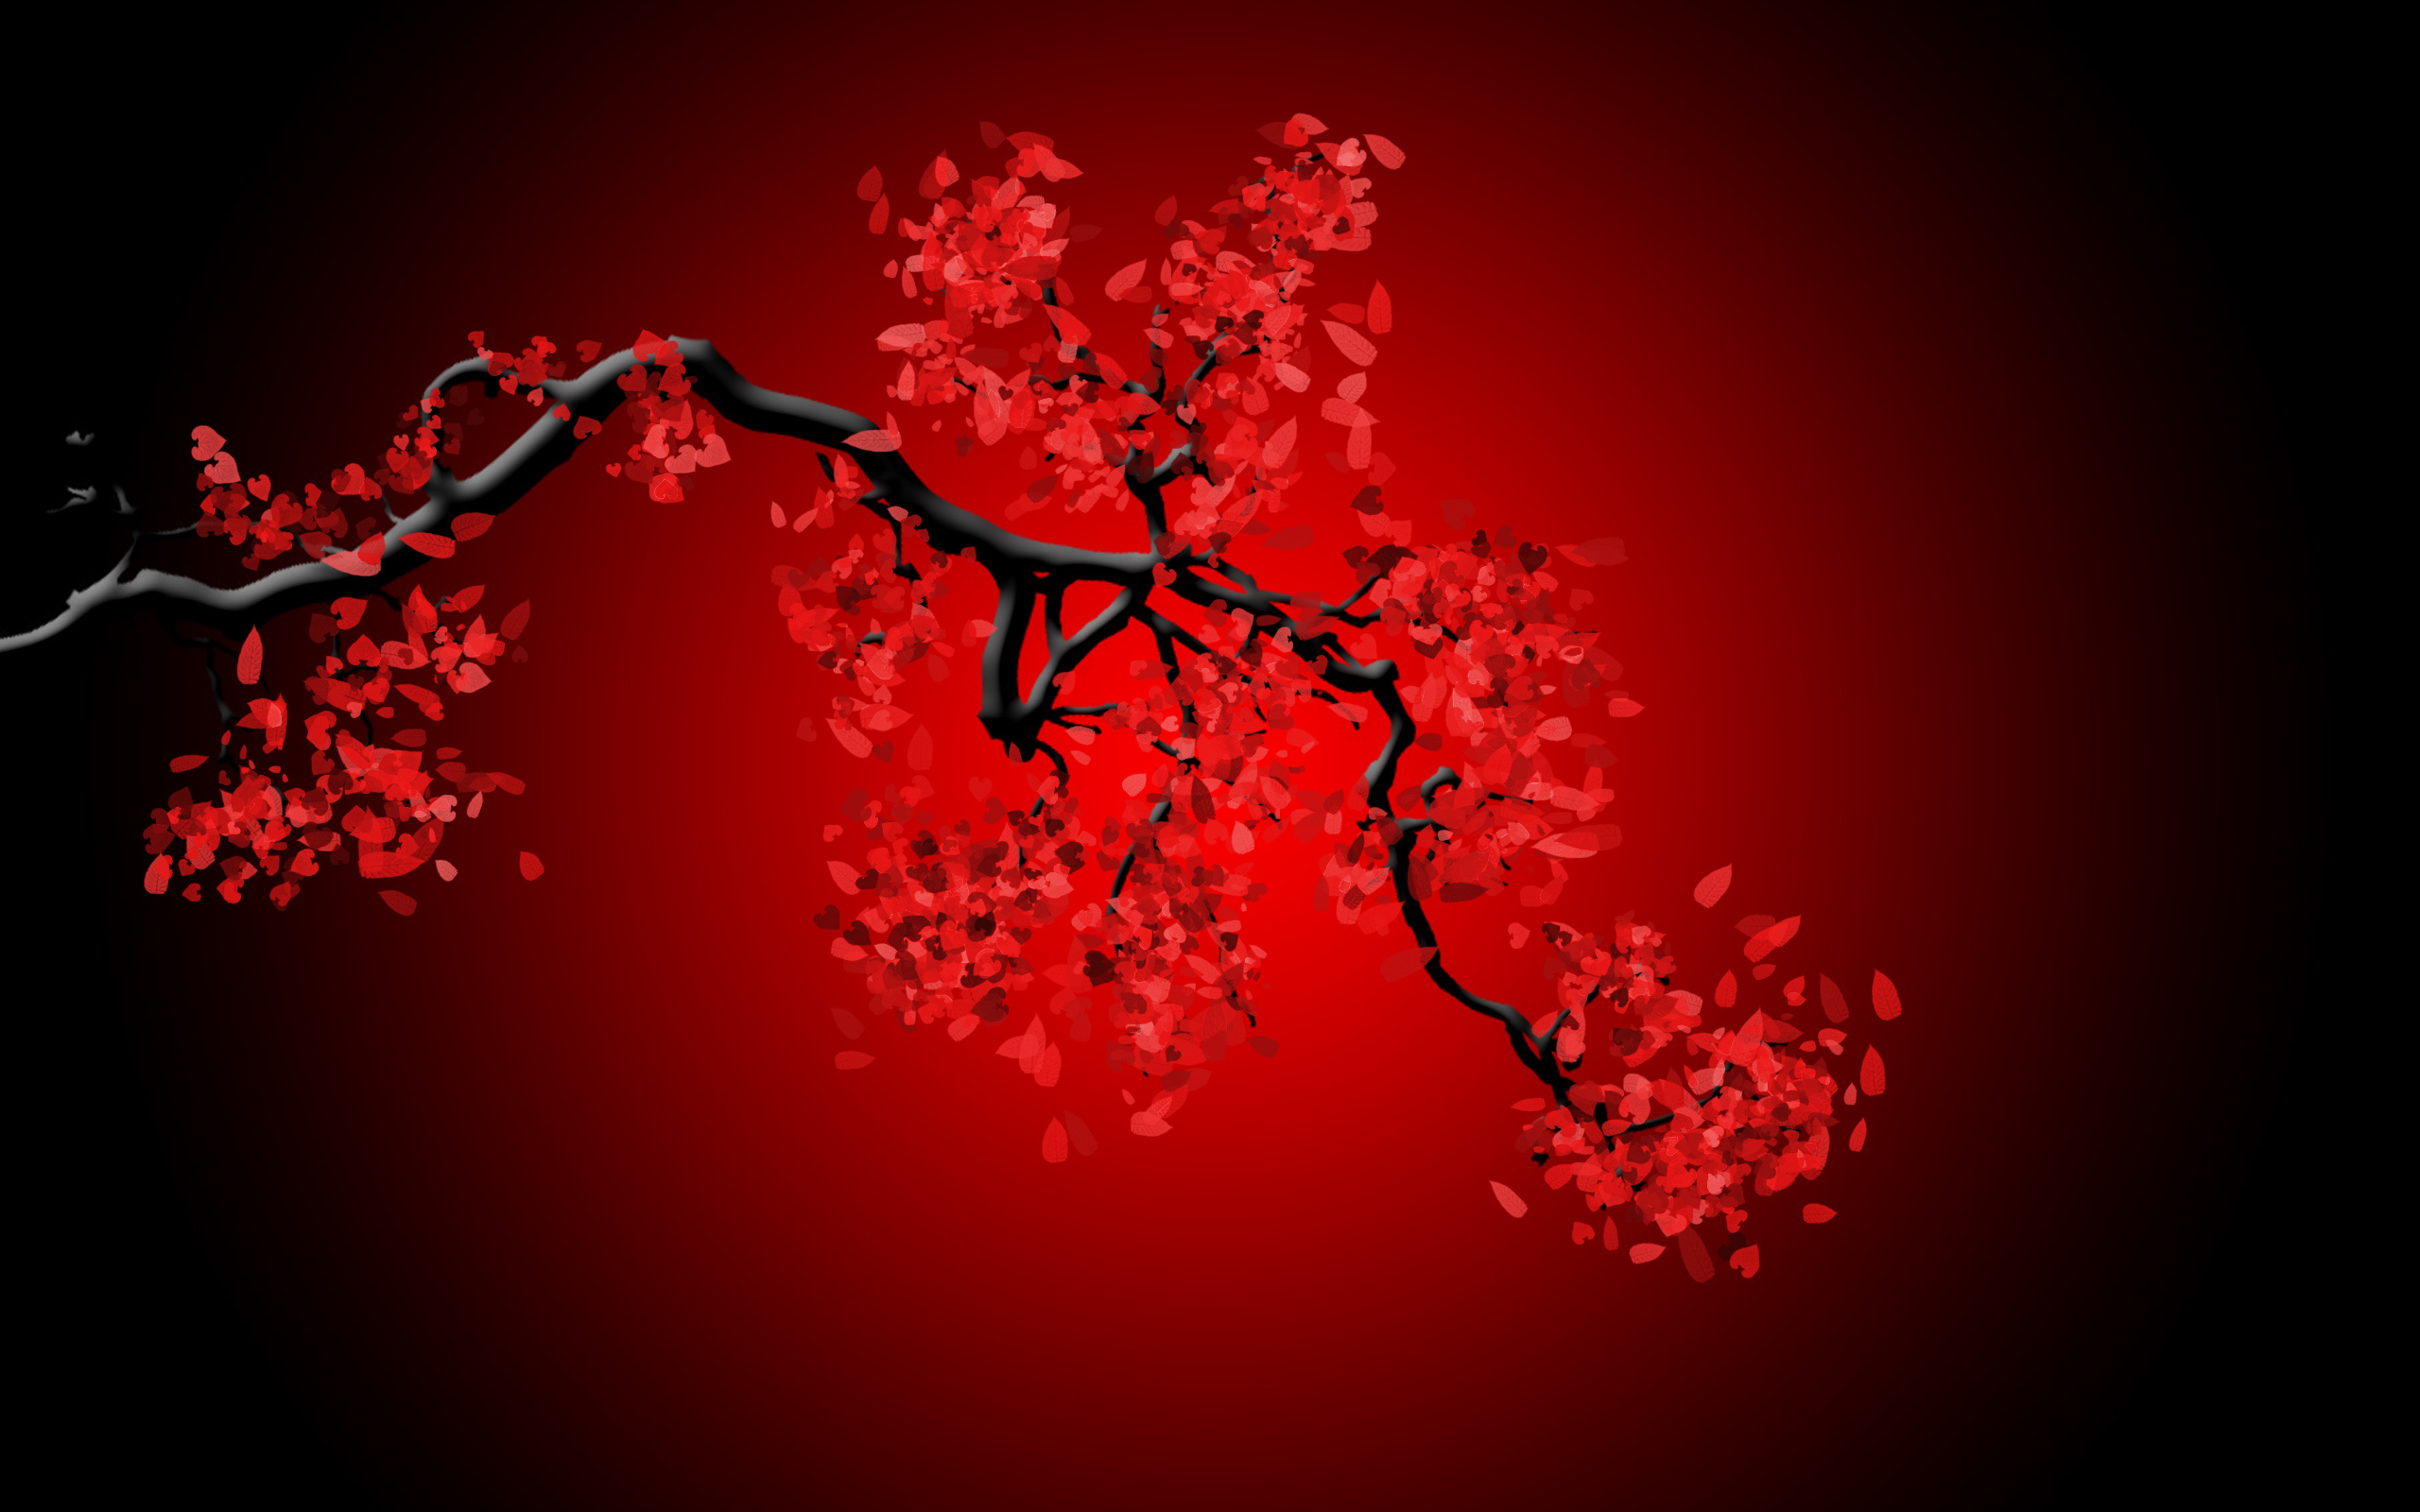 hd red backgrounds